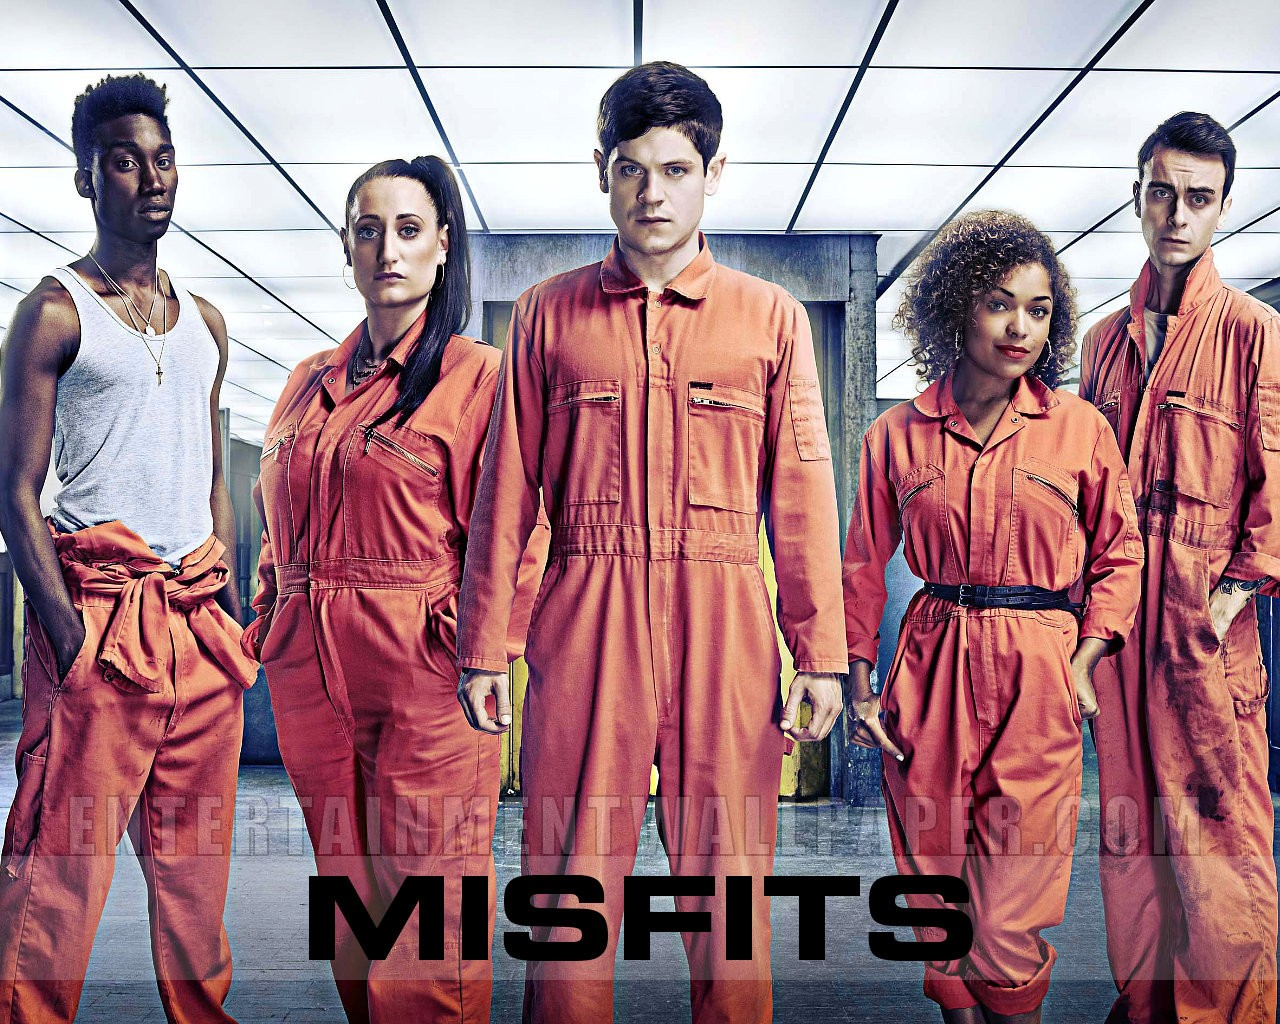 Misfits Series 3 - Misfits E4 Wallpaper (33128409) - Fanpop